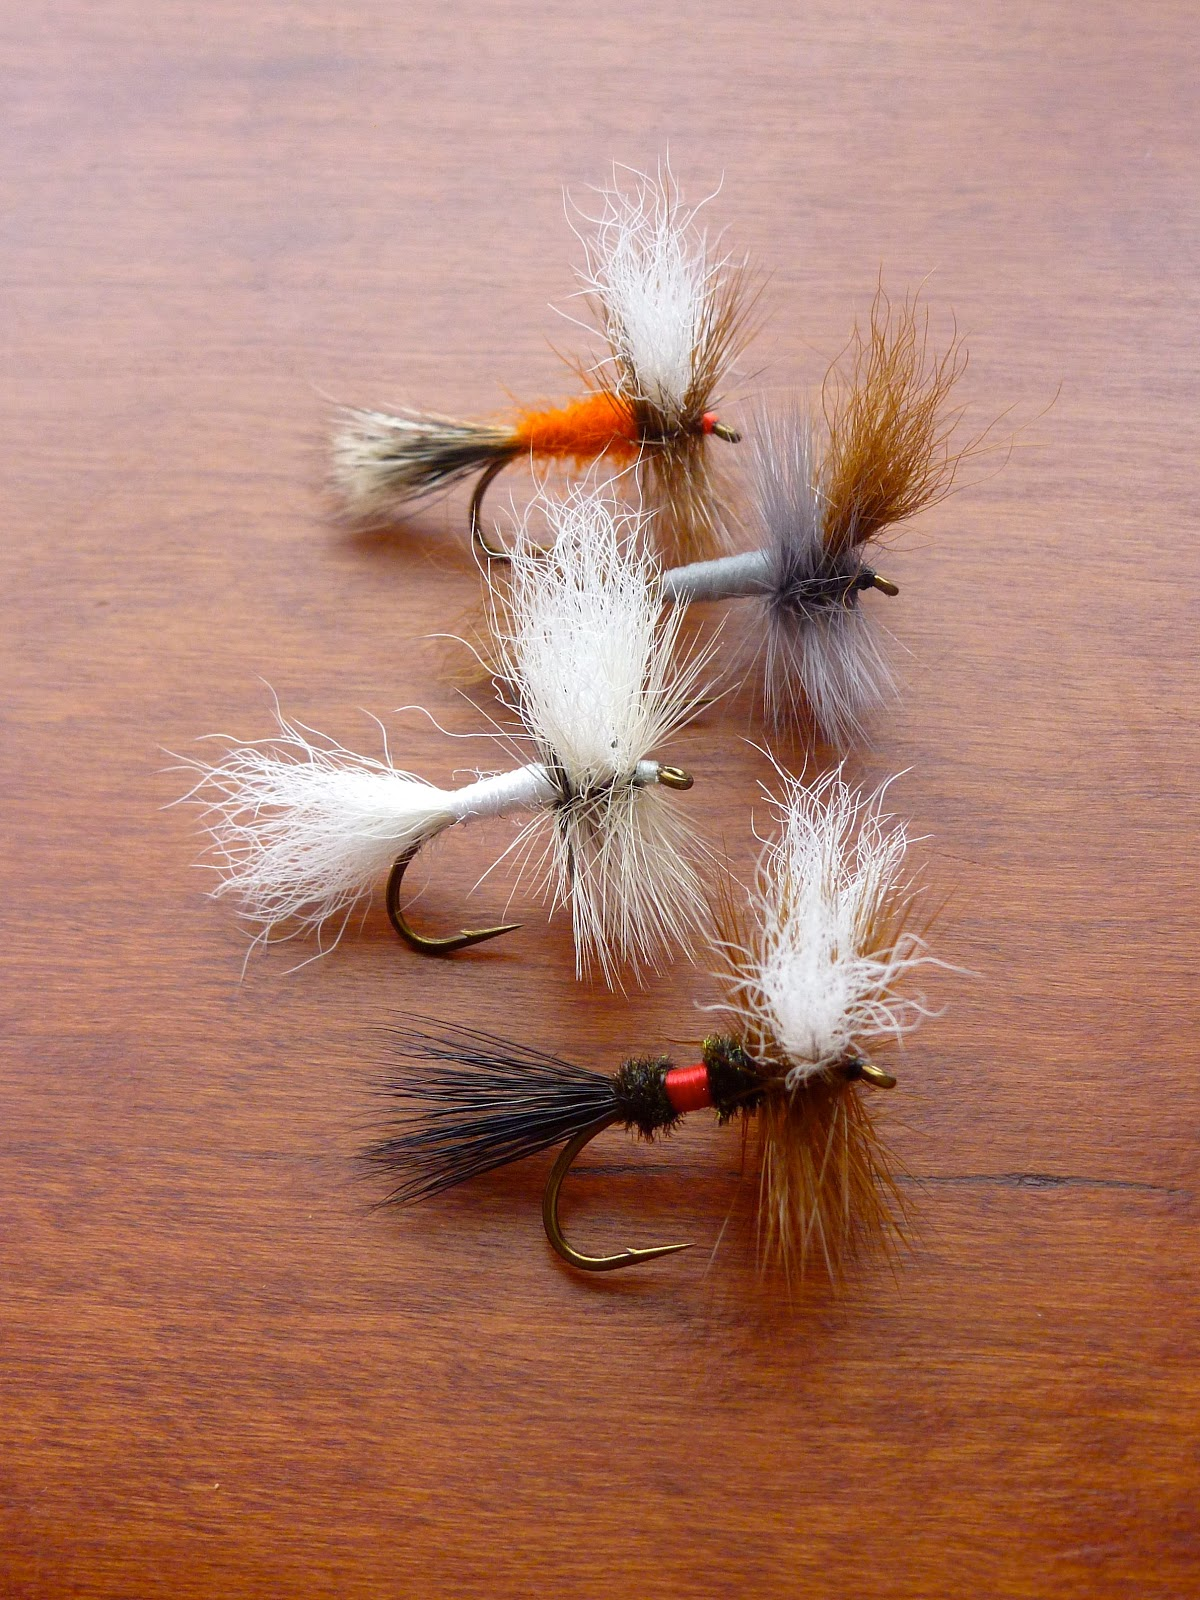 D6 6 No Red CDC dry flies size 12